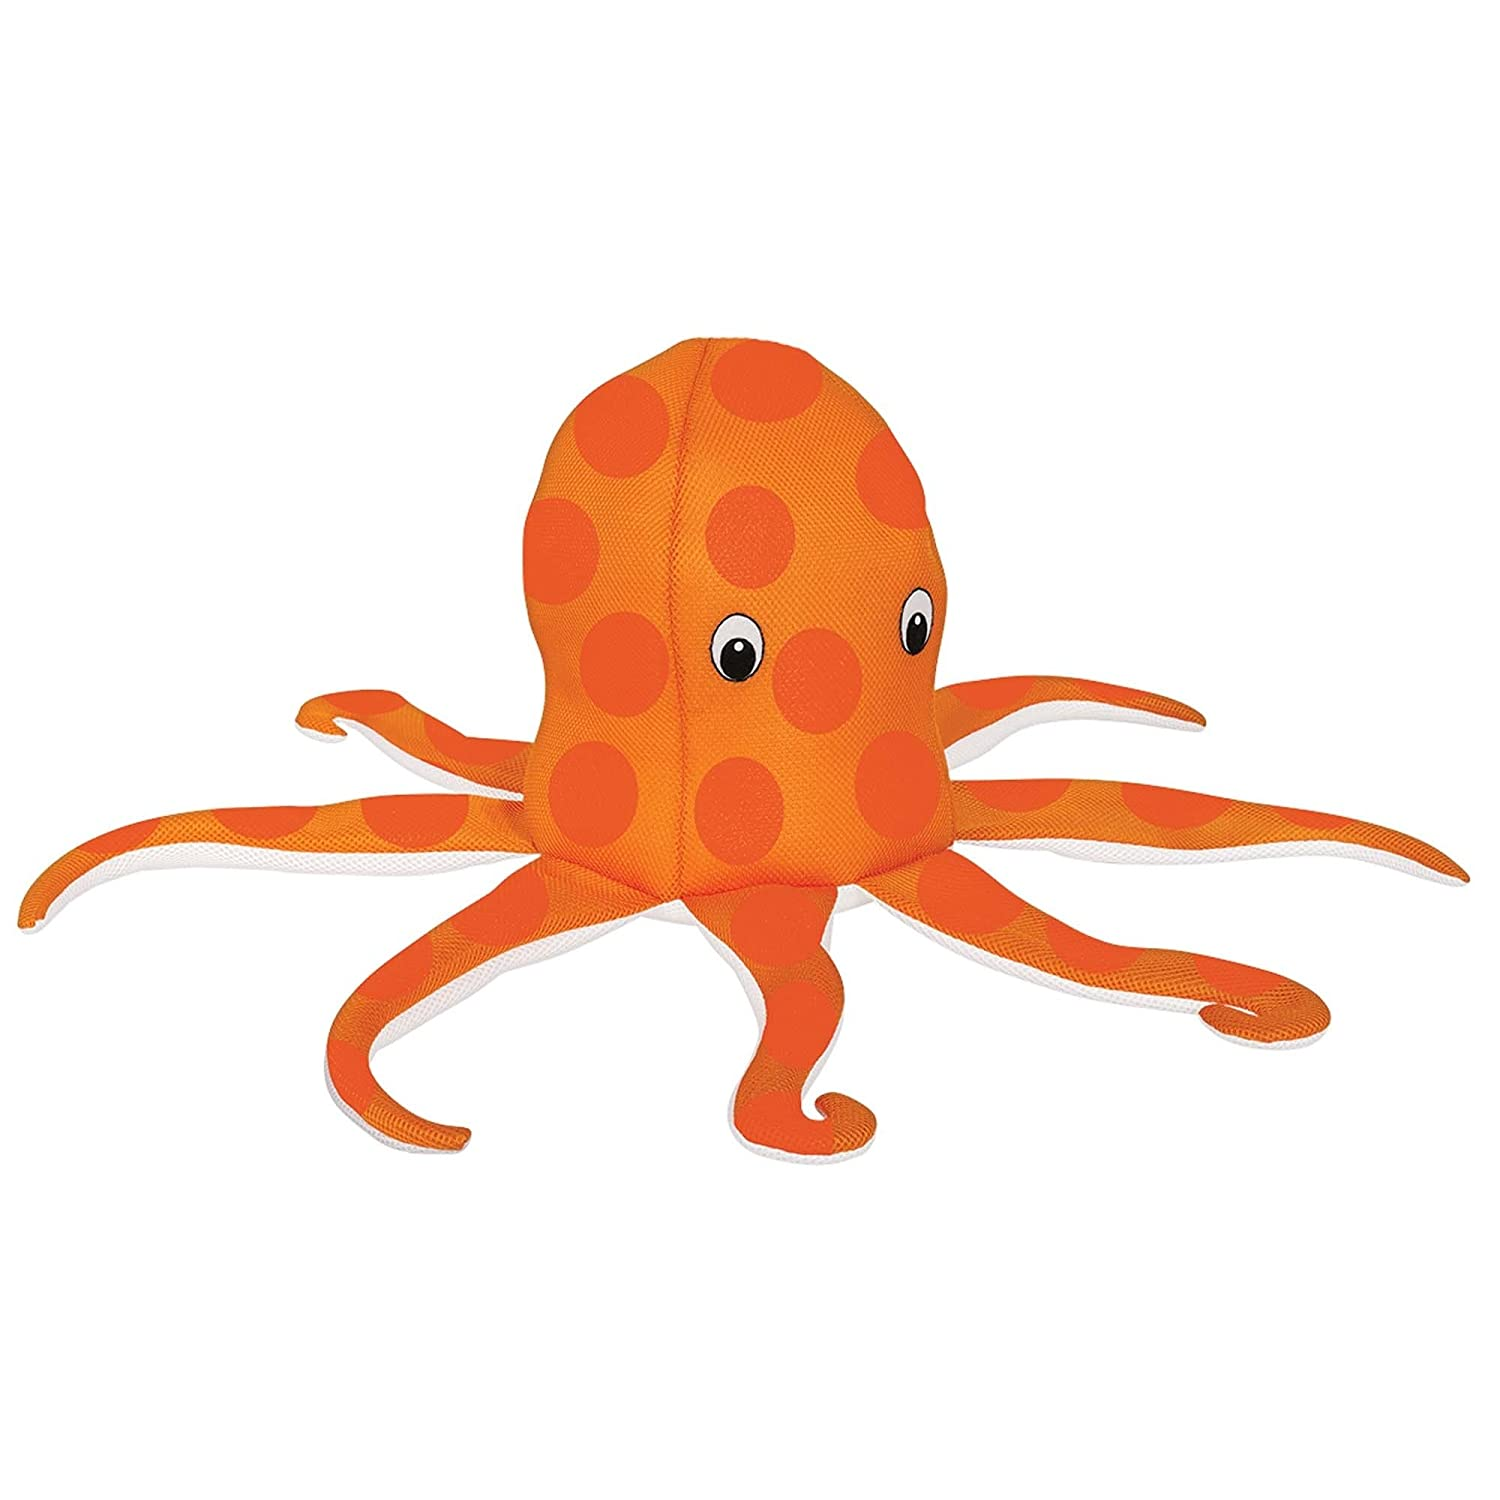 Amscan 3900136 Octopus Pool Toy One Size Multi